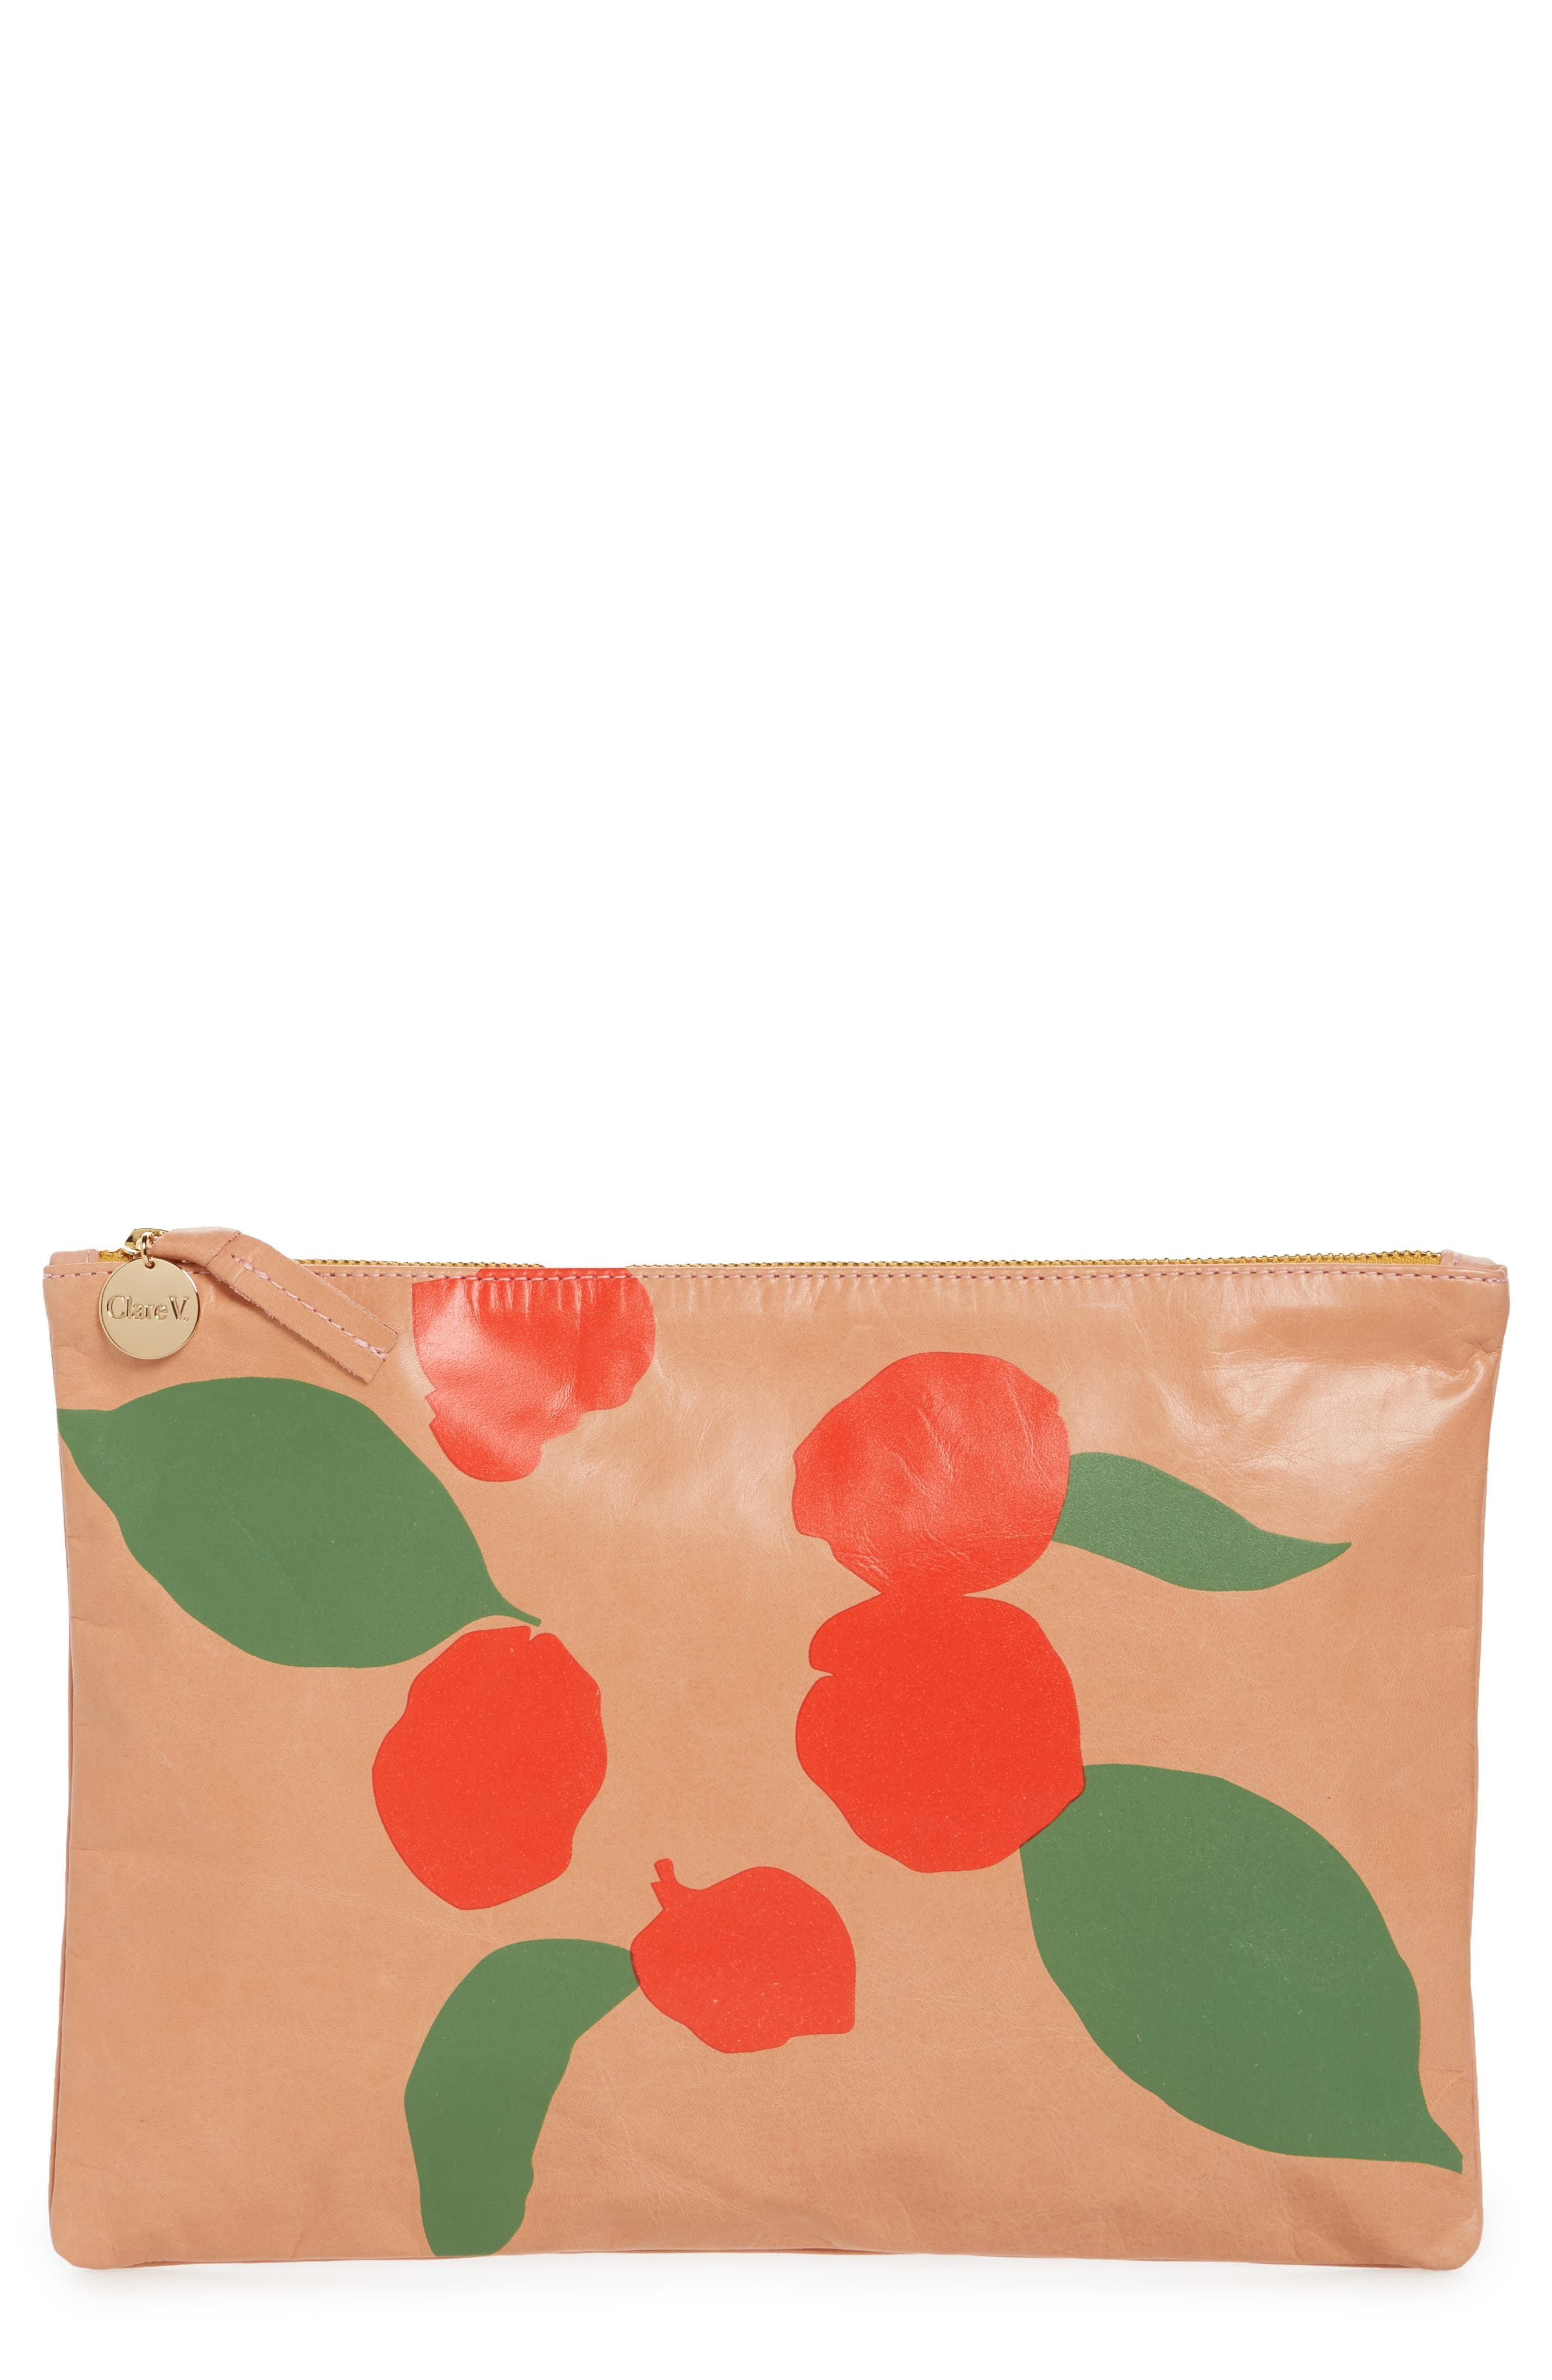 Bougainvillea Leather Clutch,                         Main,                         color, Salmon New Look